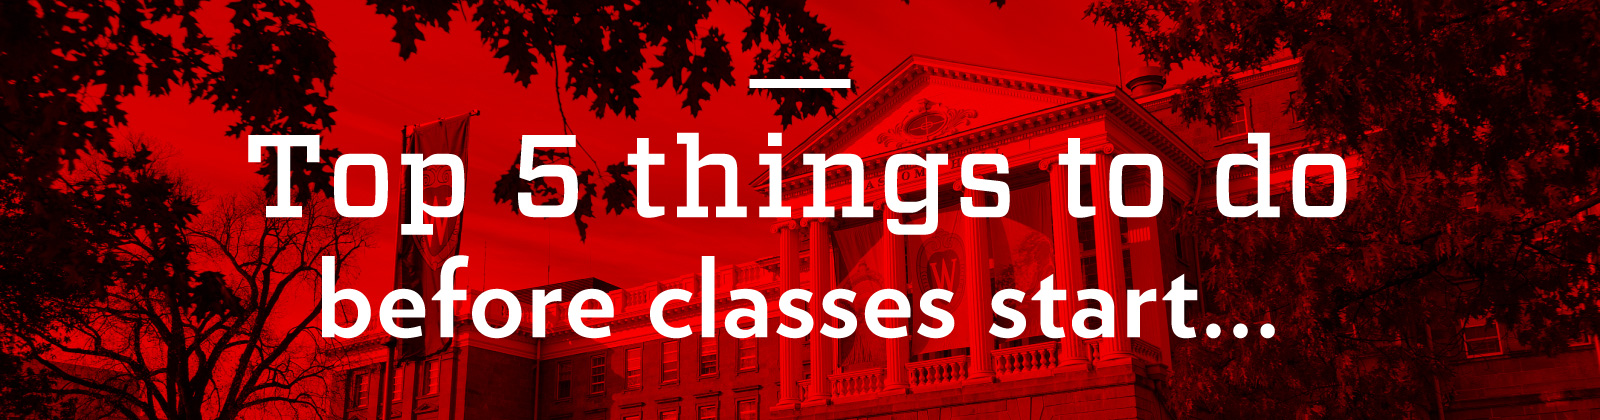 Top 5 things to do before classes start...